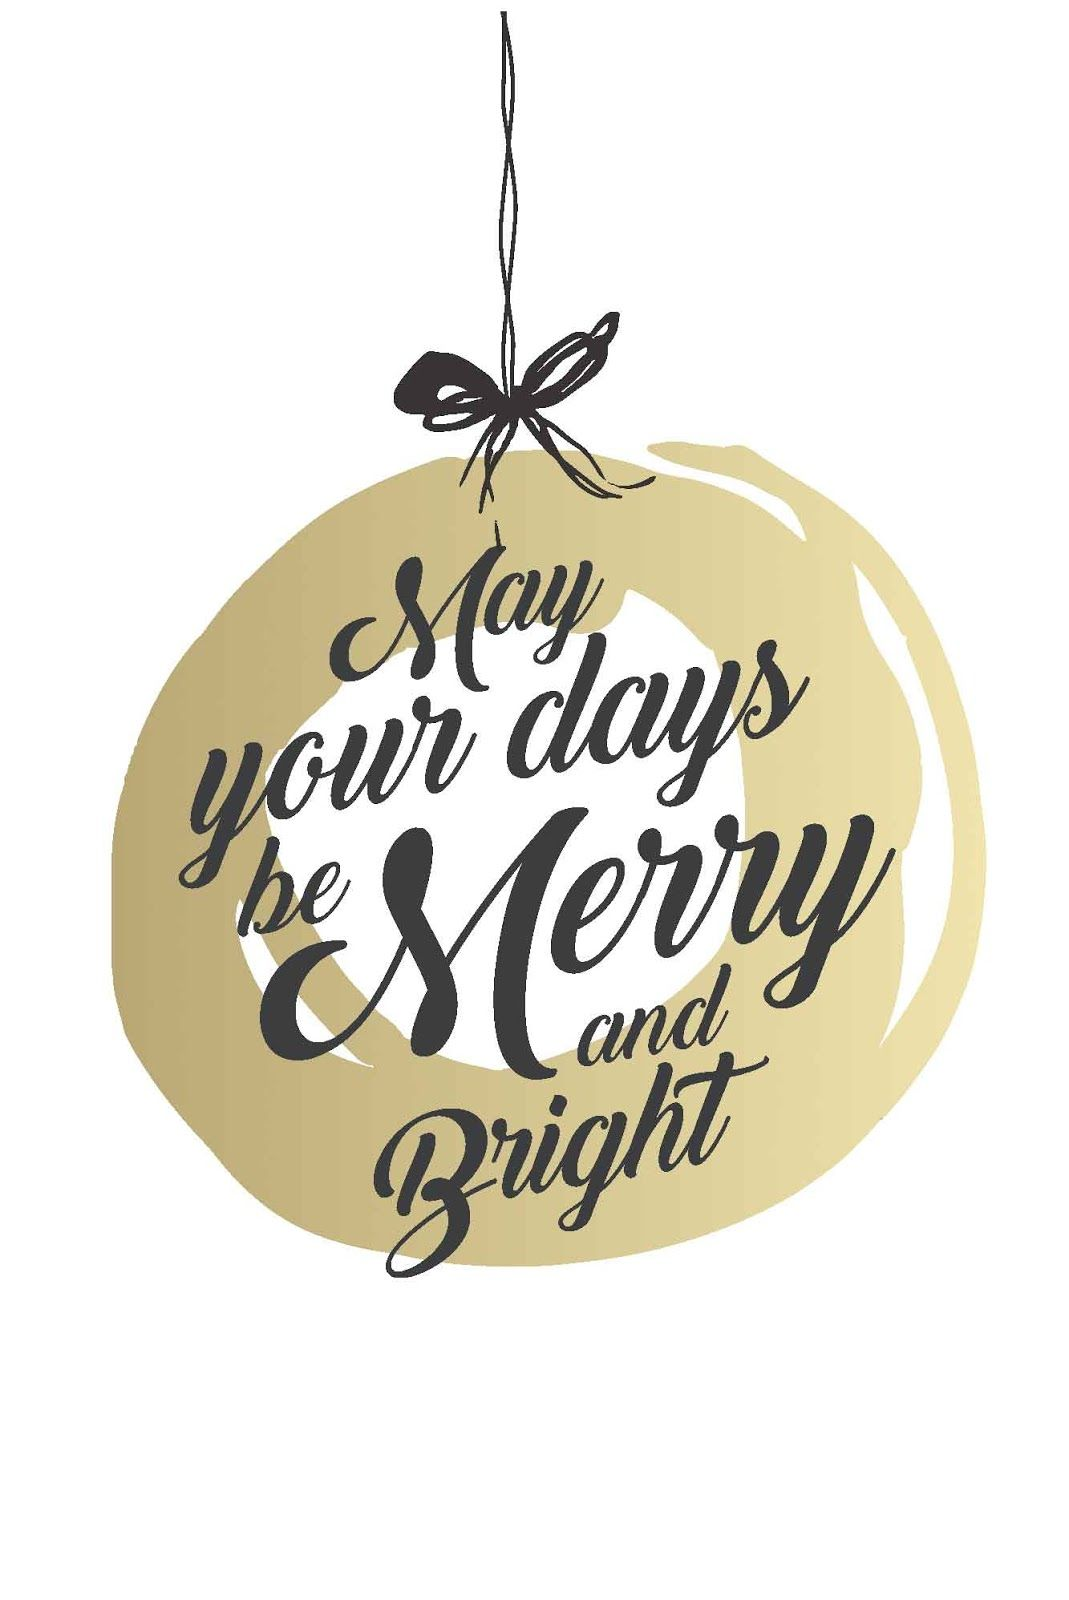 Free Christmas Card Holiday Greeting Cards Invitation Templates Christmas Cards Free Christmas Cards Merry Christmas Quotes